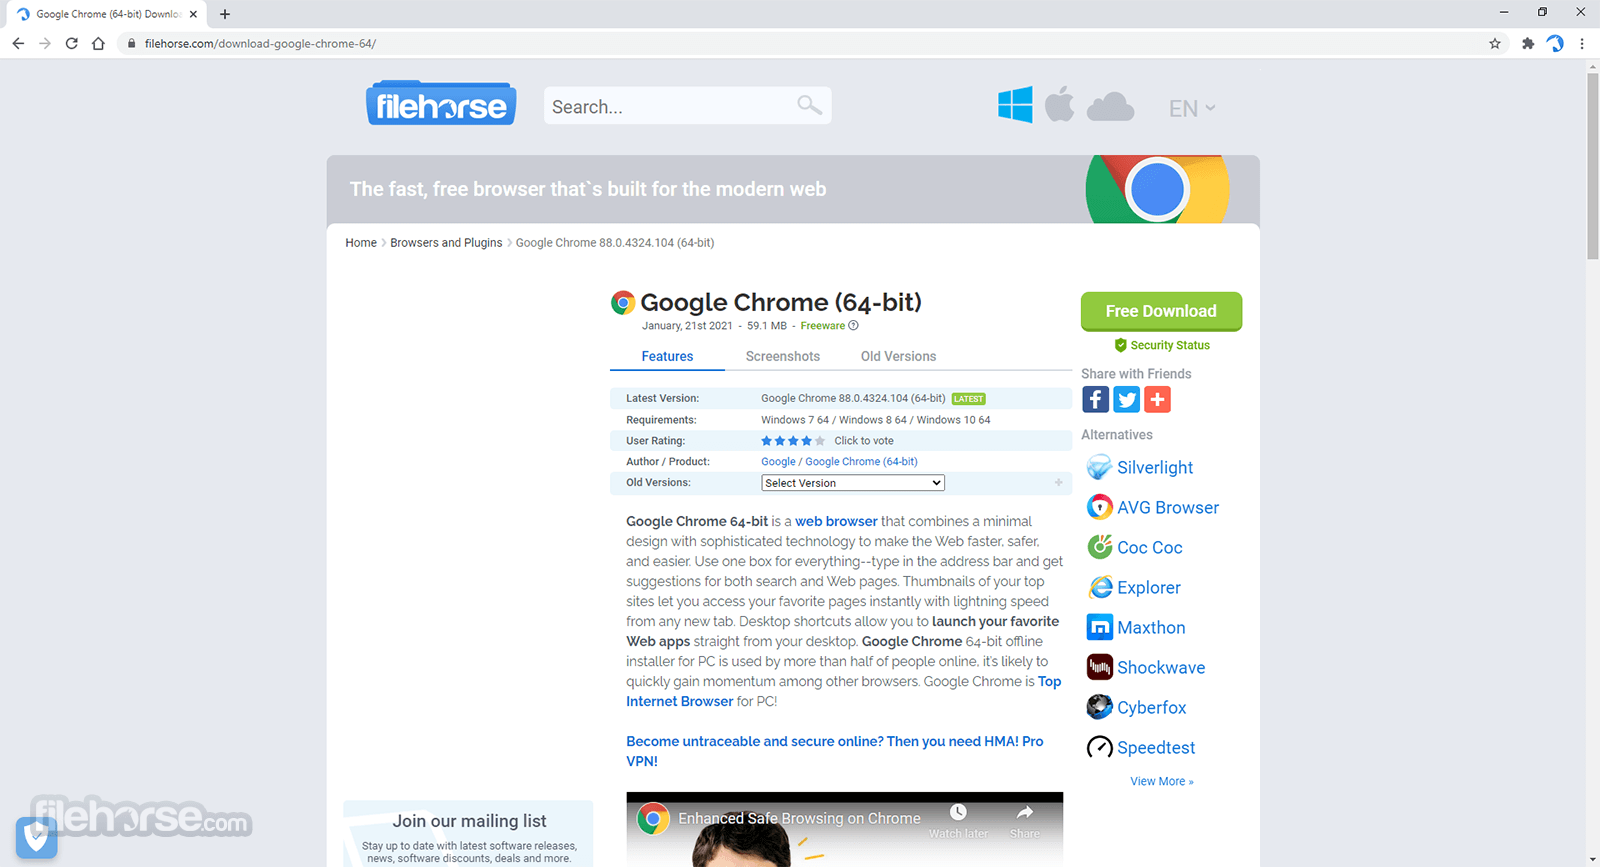 download free google chrome for windows 8.1 64 bit